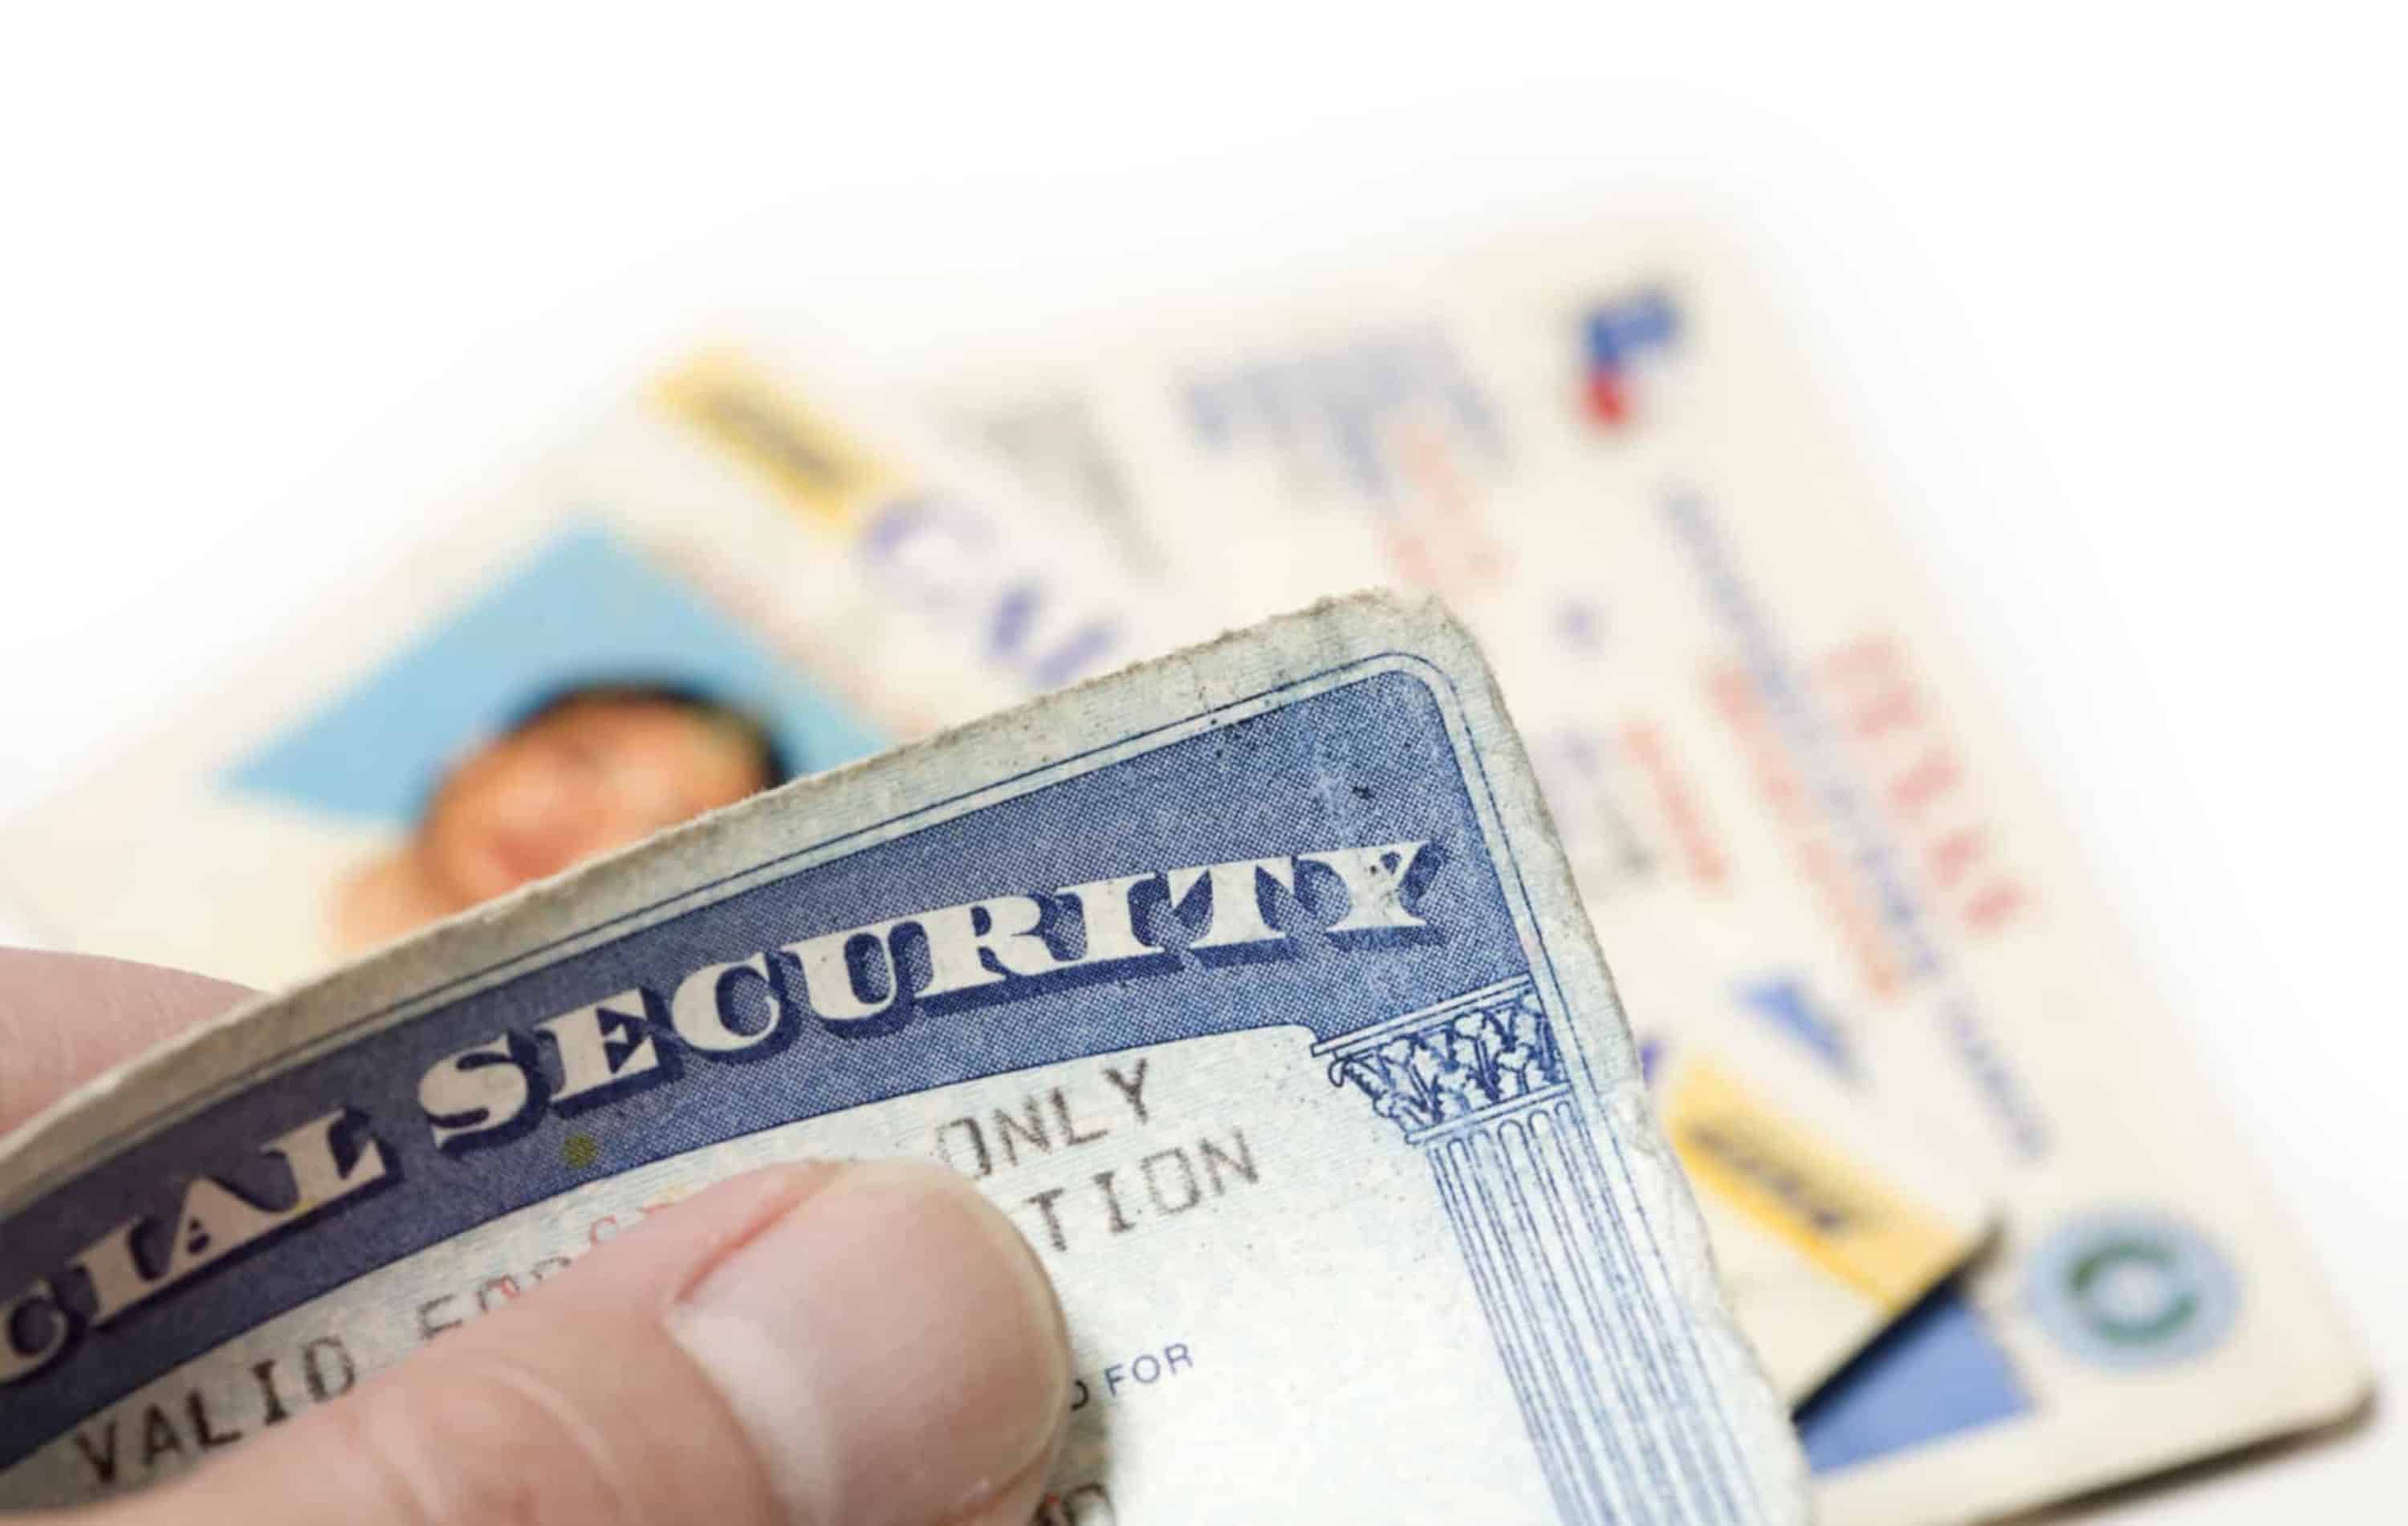 Man holding Identity theft documents-social security card, drivers license, voter registration card.